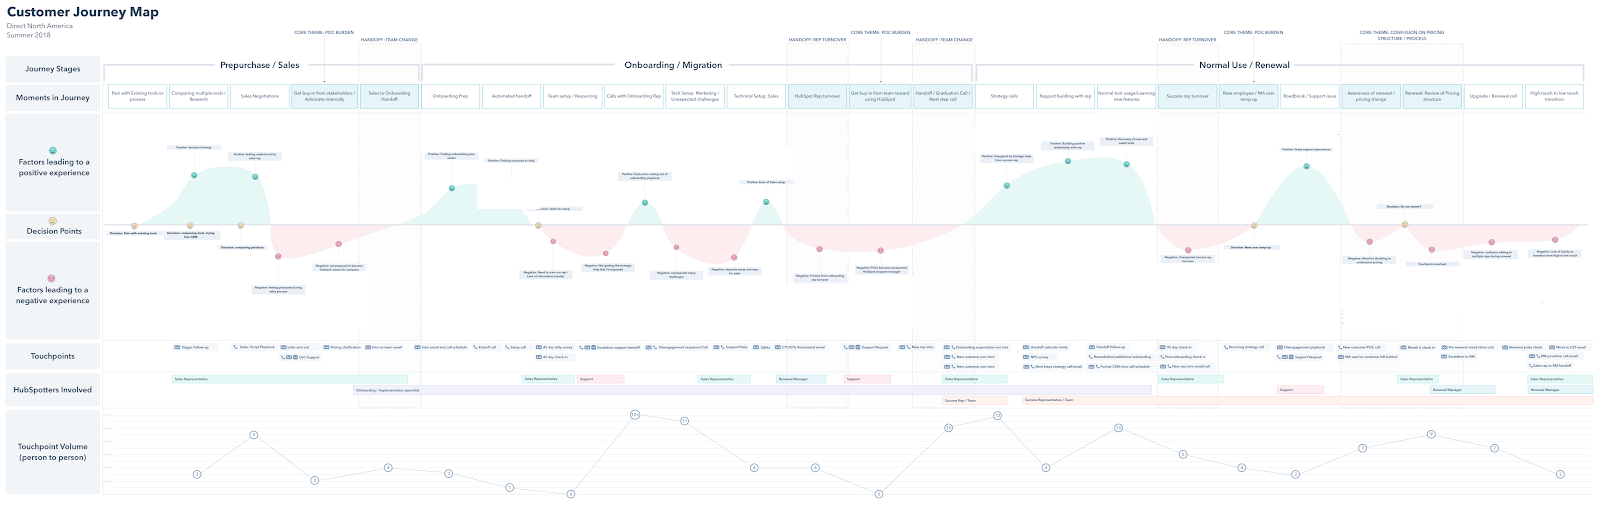 How HubSpot Created Its Customer Journey Map